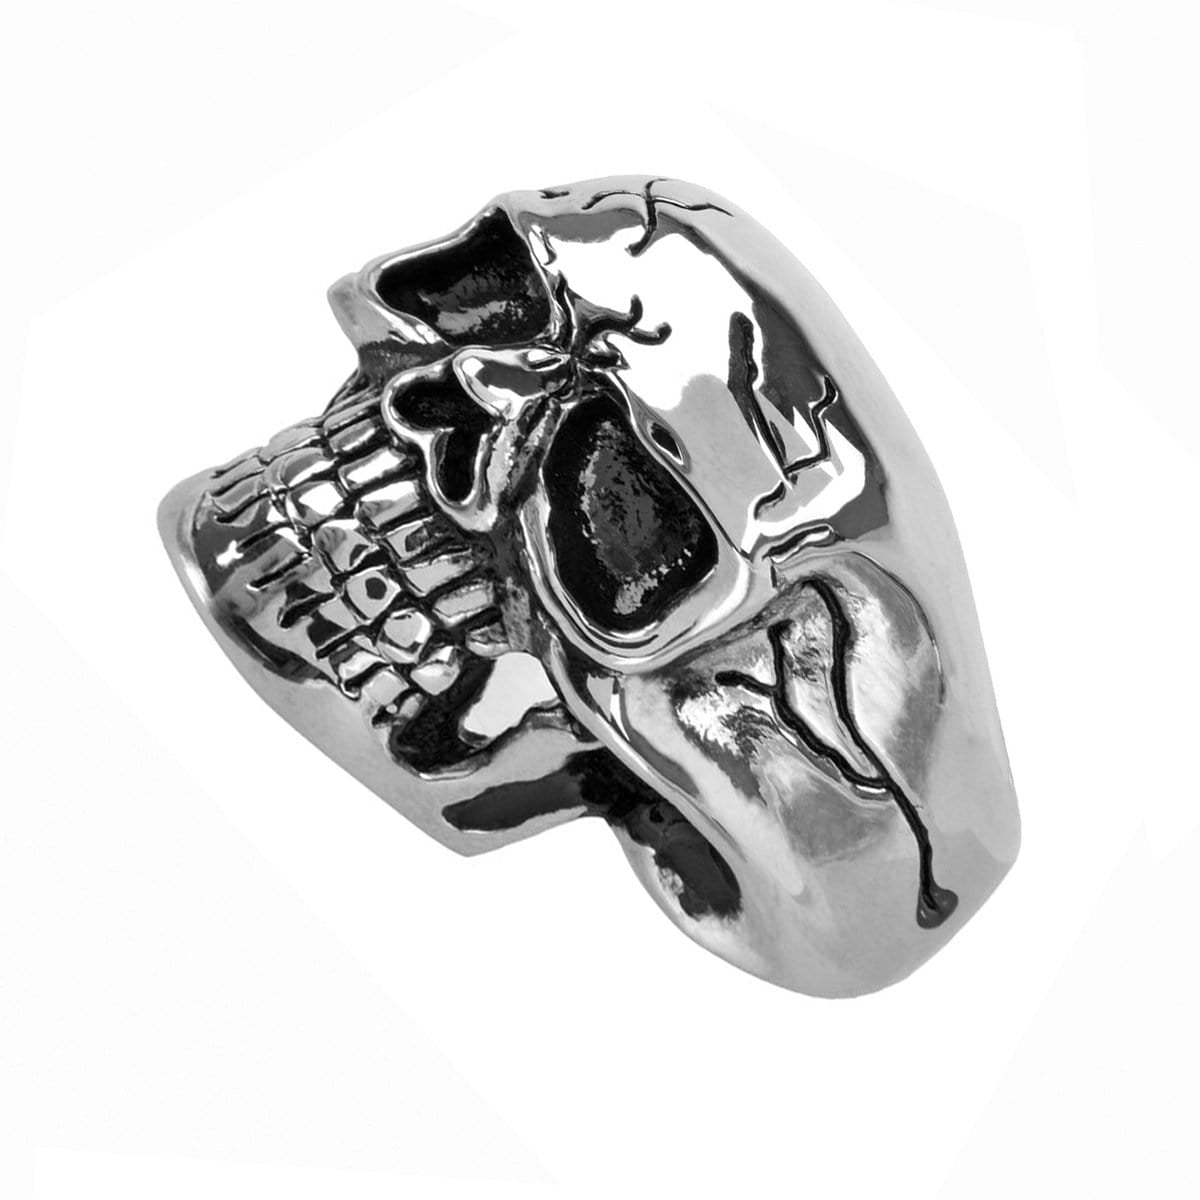 Silver Stainless Steel Grinning Cracked Skull Ring - Inox Jewelry India